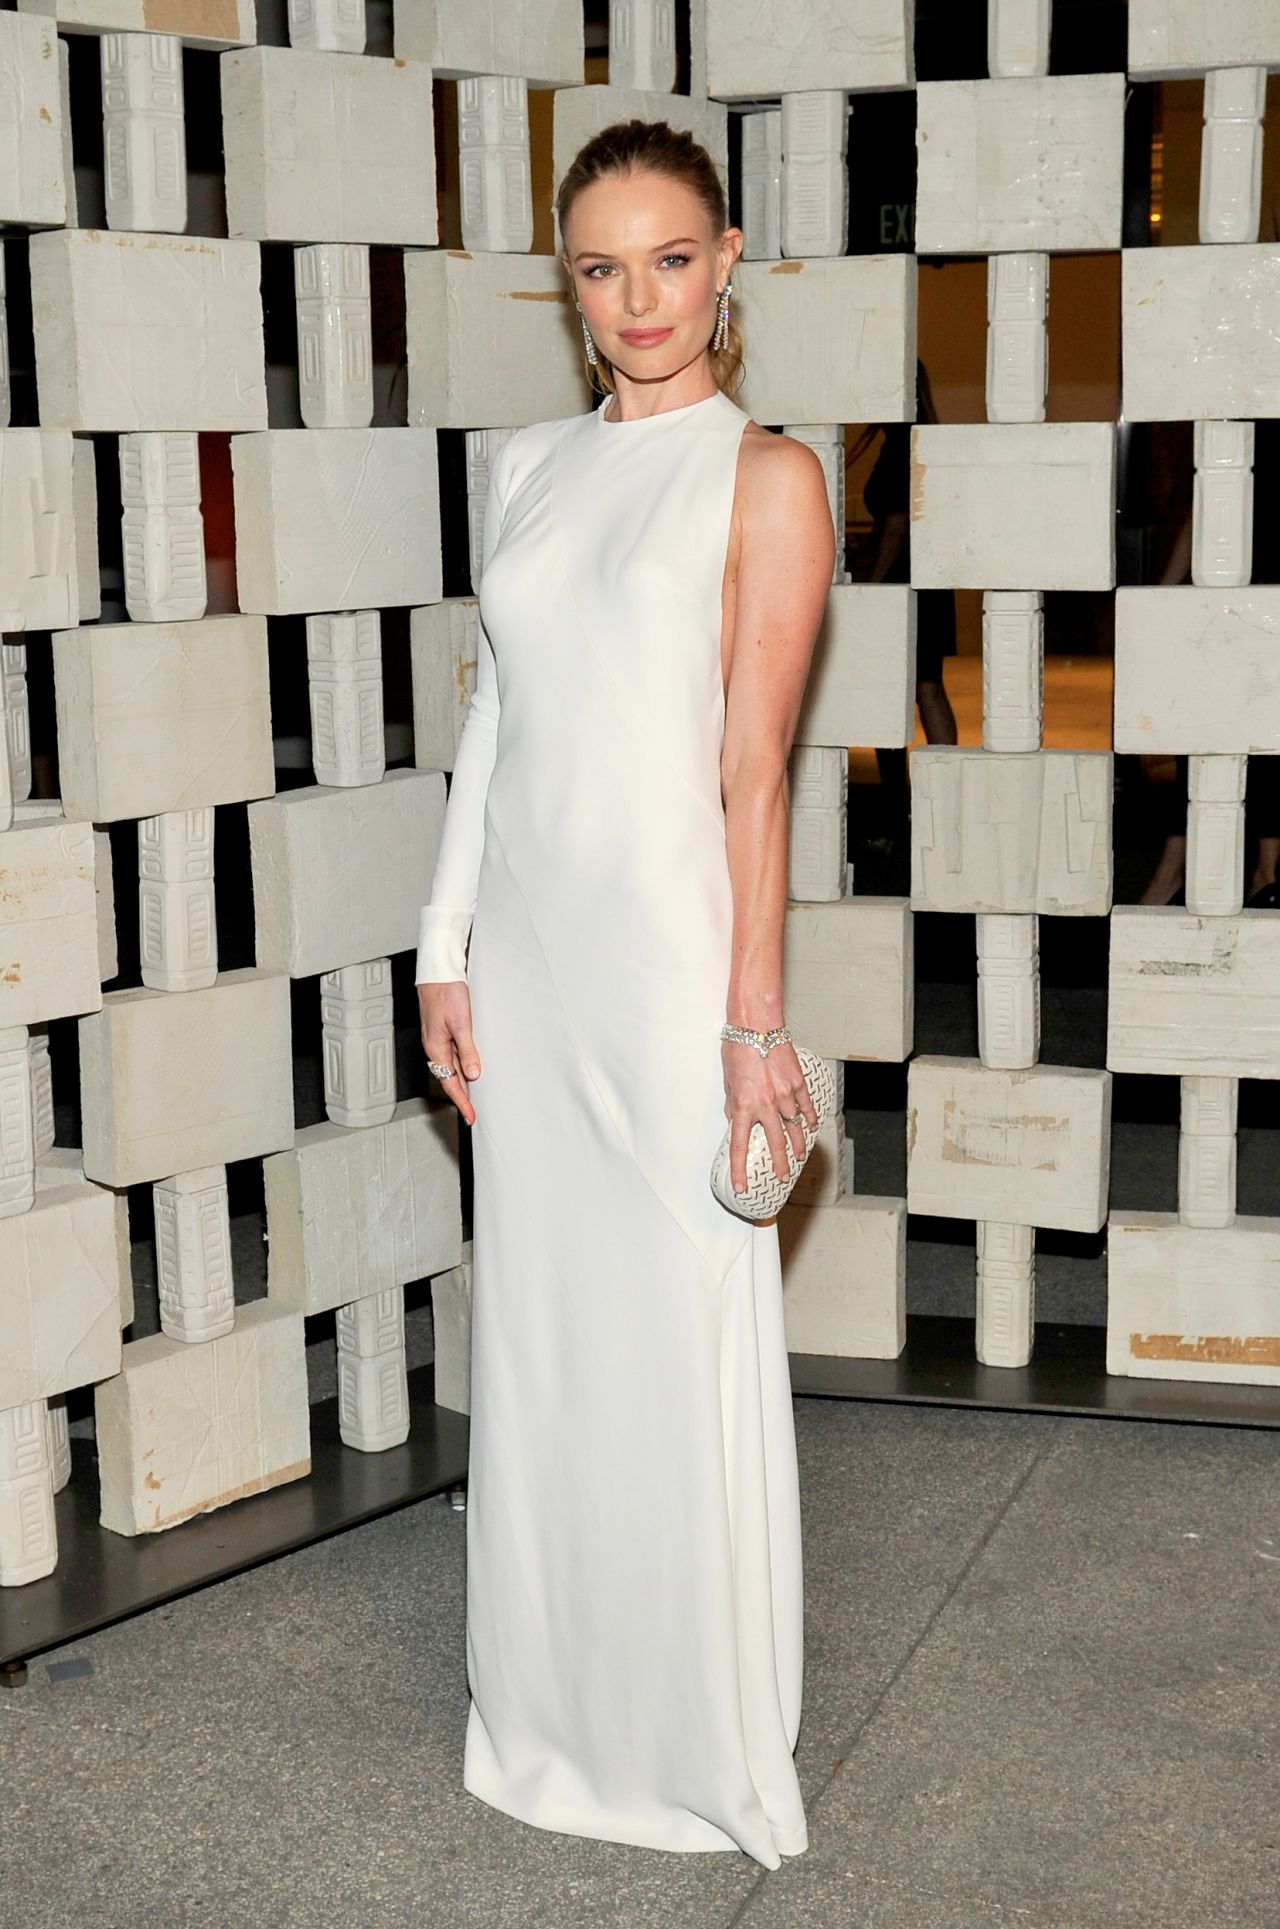 kate-bosworth-2014-hammer-museum-s-gala-in-the-garden-in-westwood_2